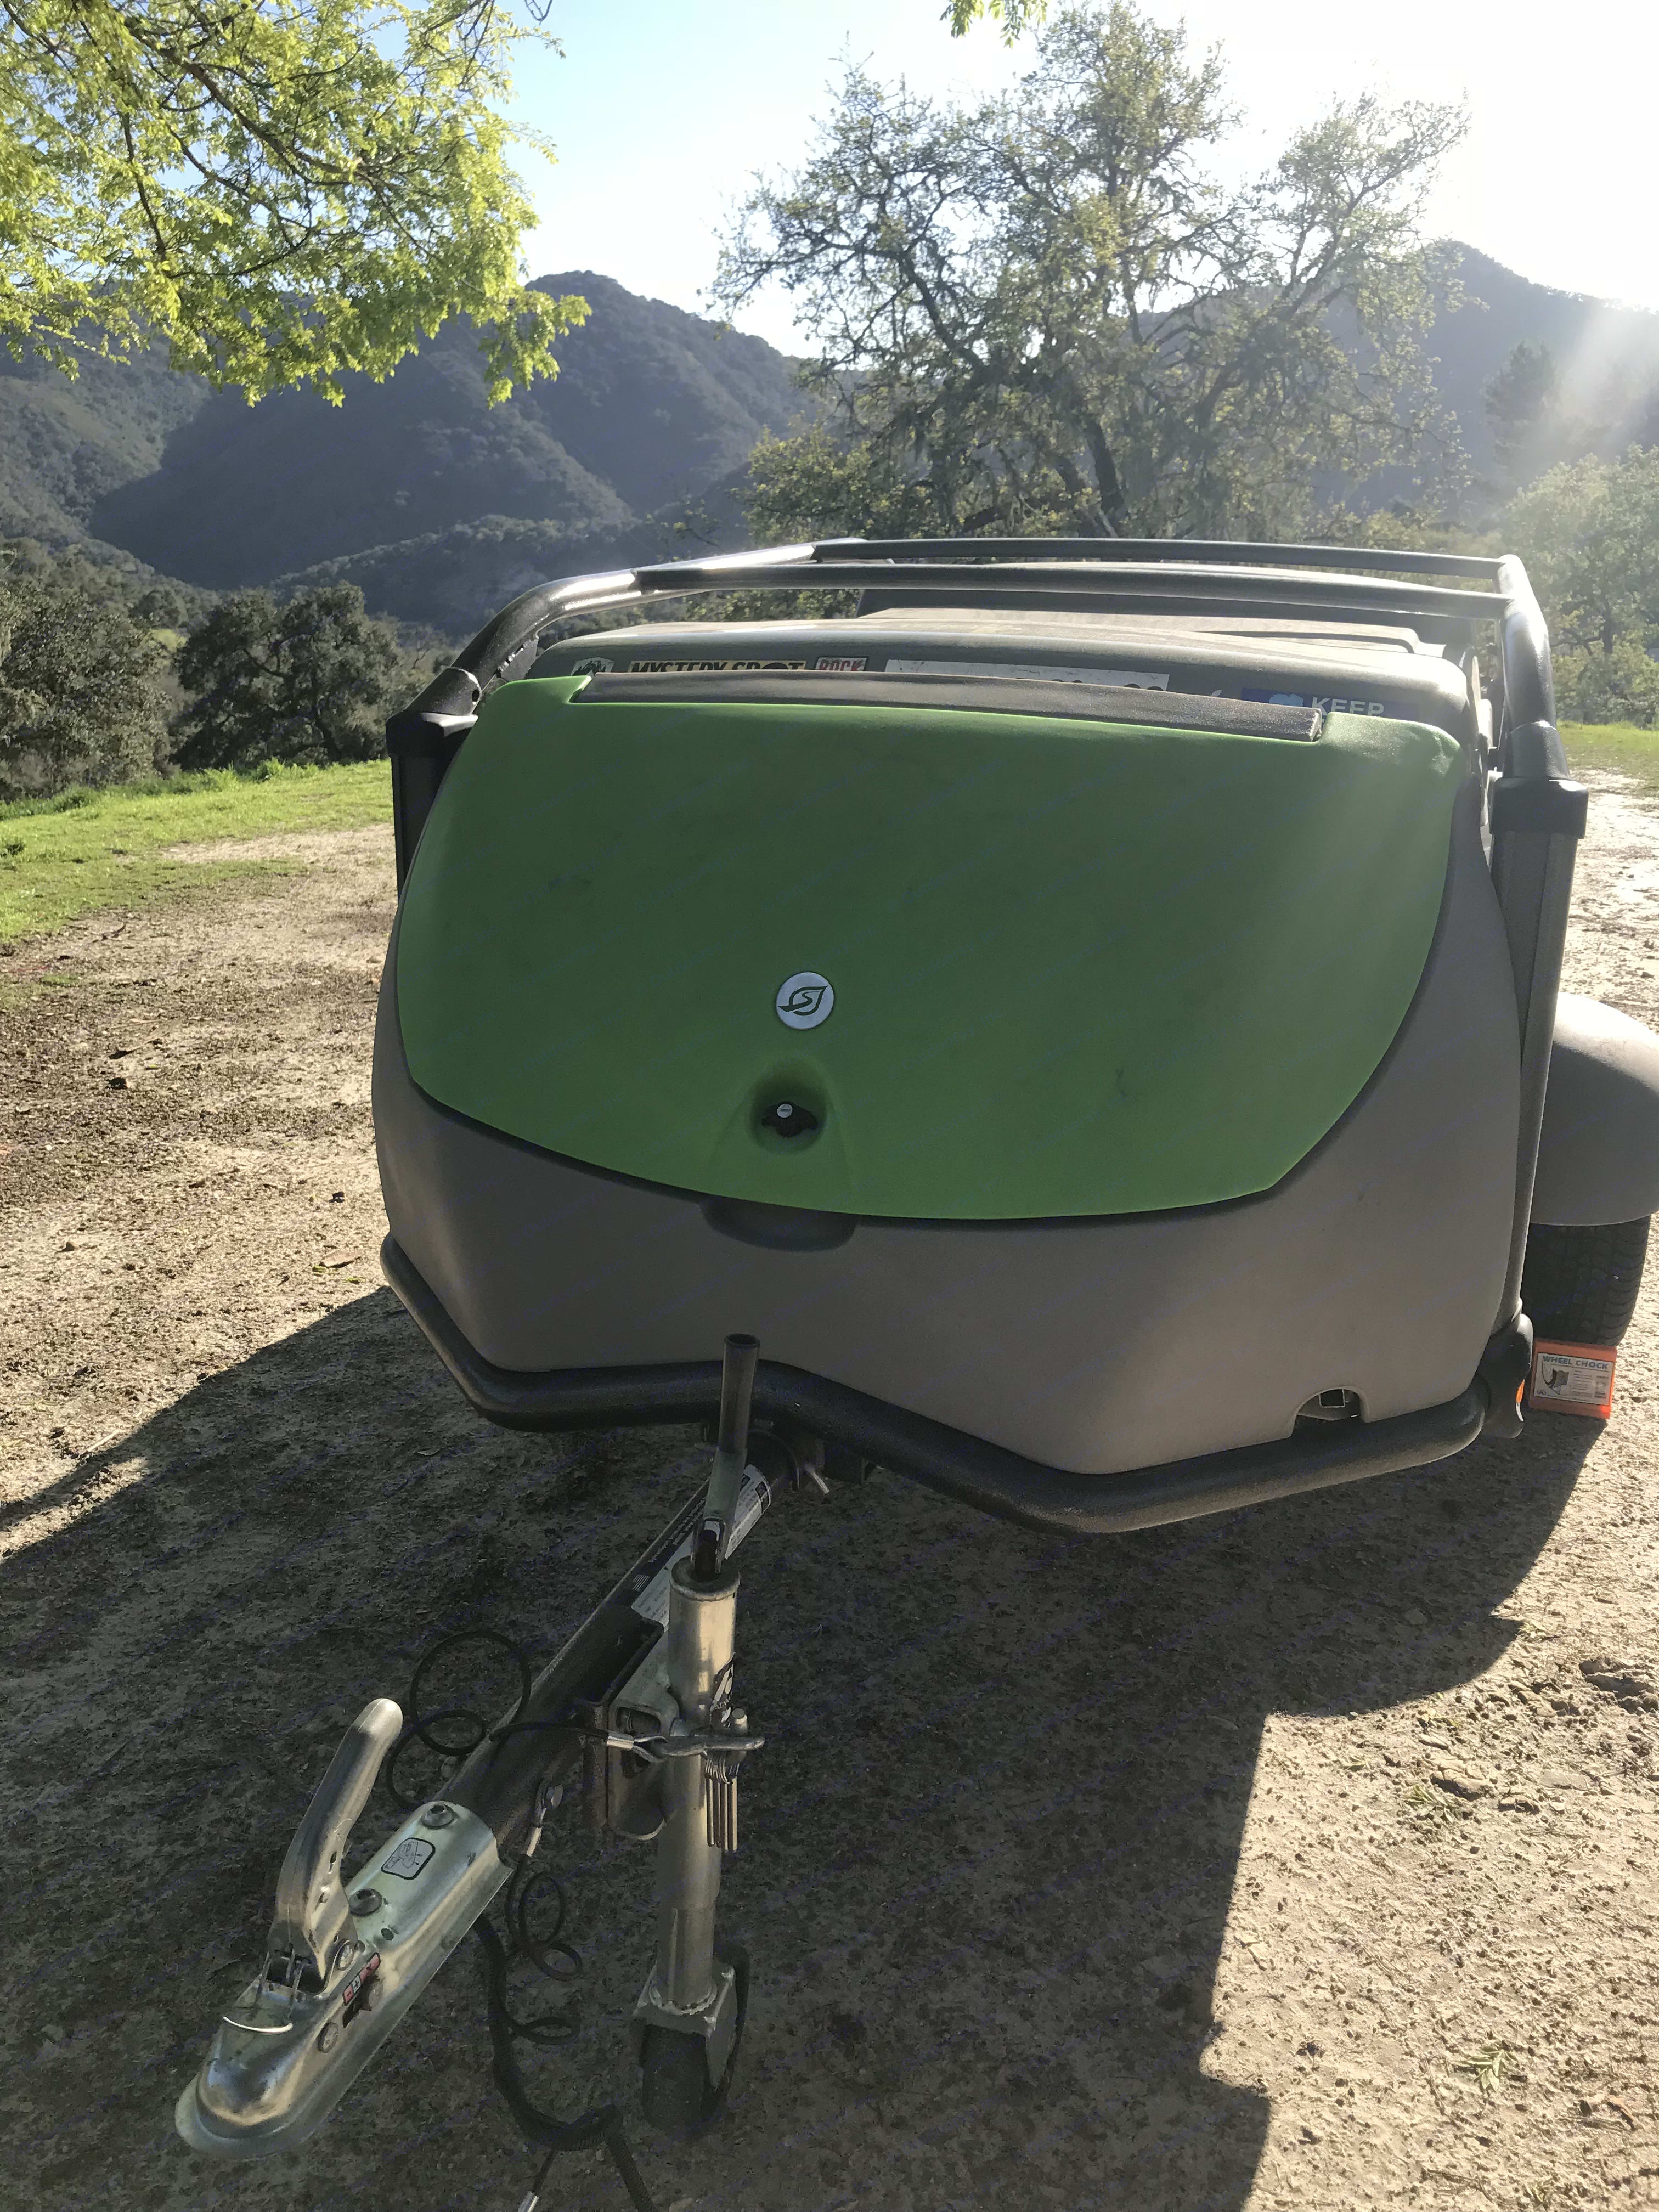 All secured and ready to roll ! This camper has a small footprint when closed up, allowing for aerodynamic towing. The green door opens to reveal trunk space where we store the mattresses, camp chairs, and more. SylvanSport GO 2015